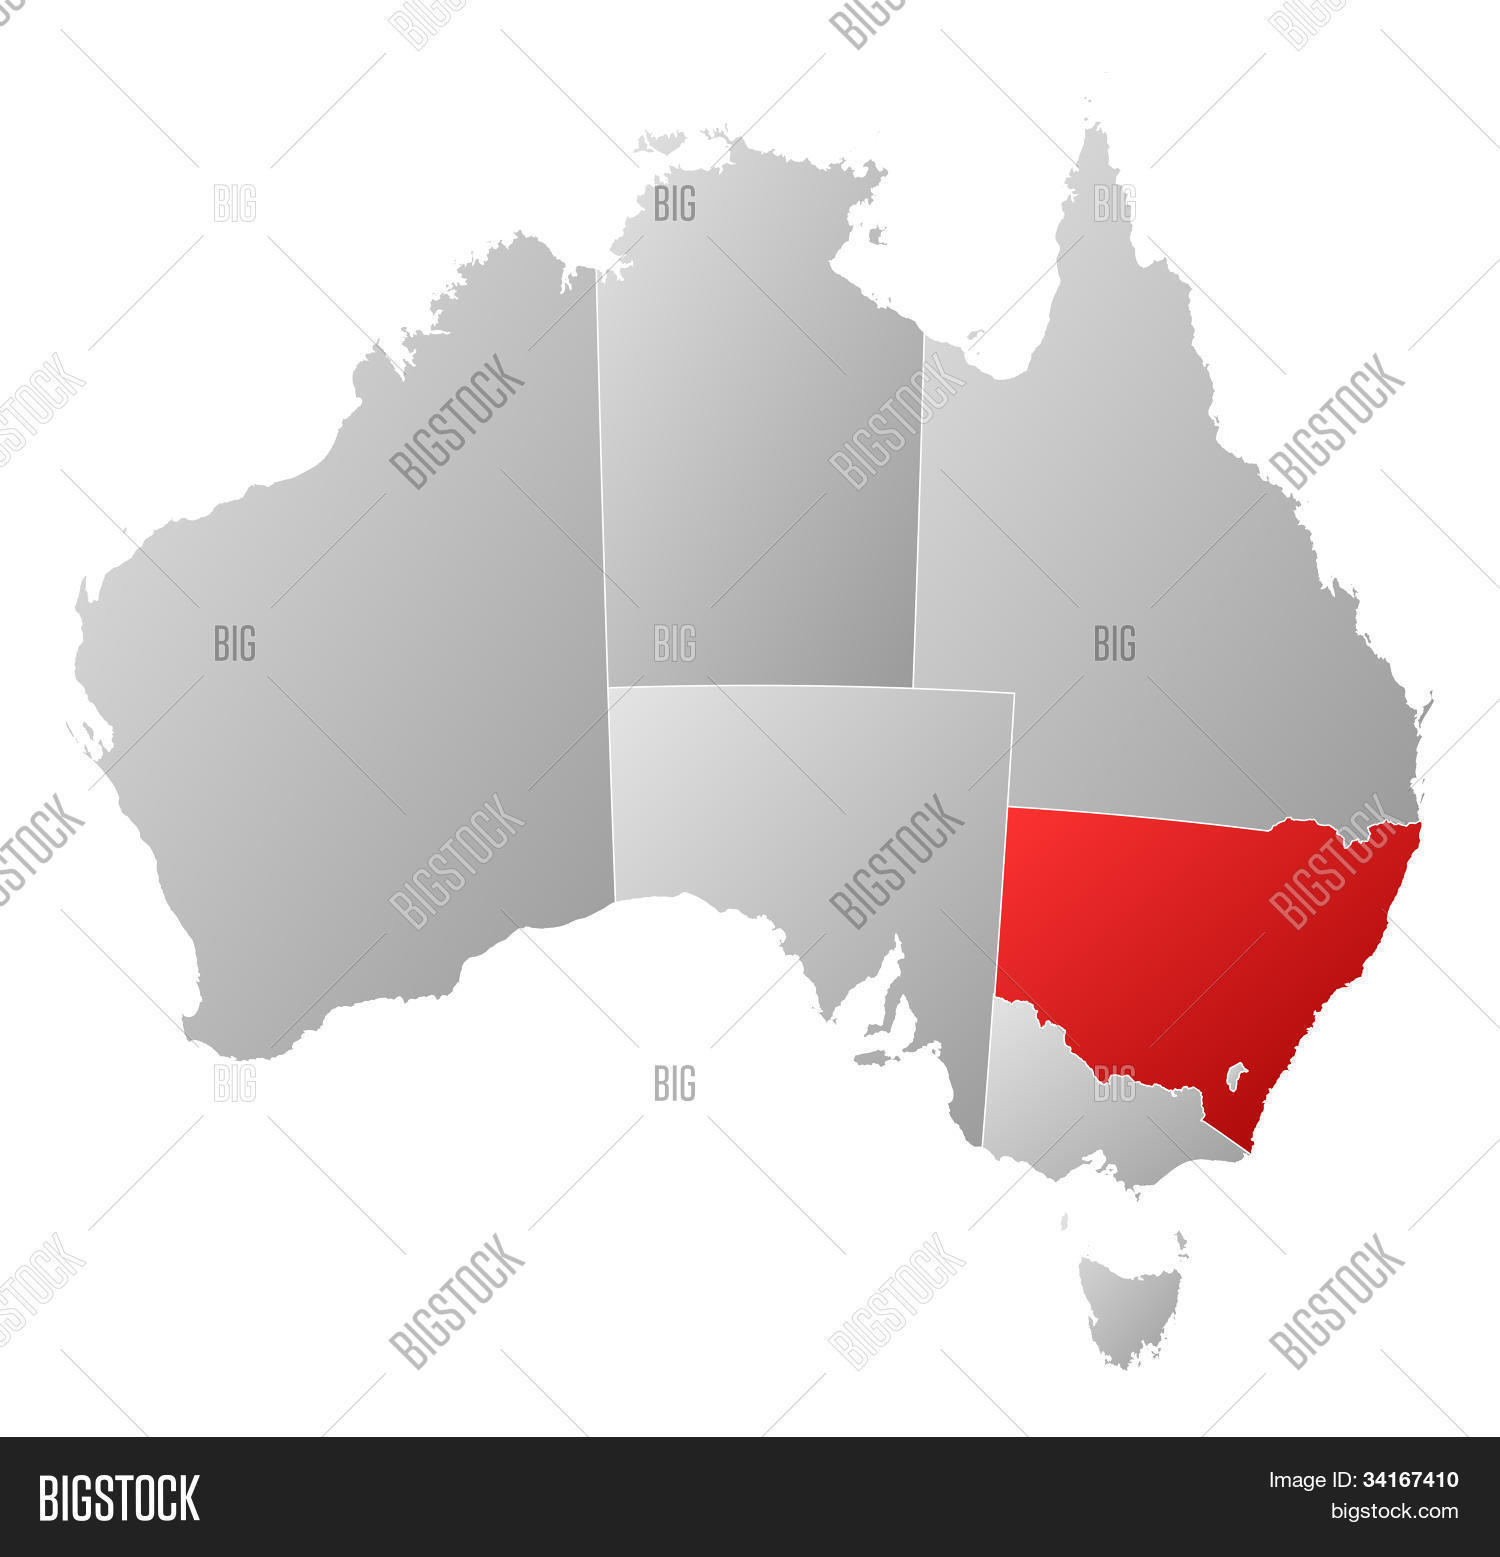 Map Of Australia New South Wales.Map Australia New Image Photo Free Trial Bigstock